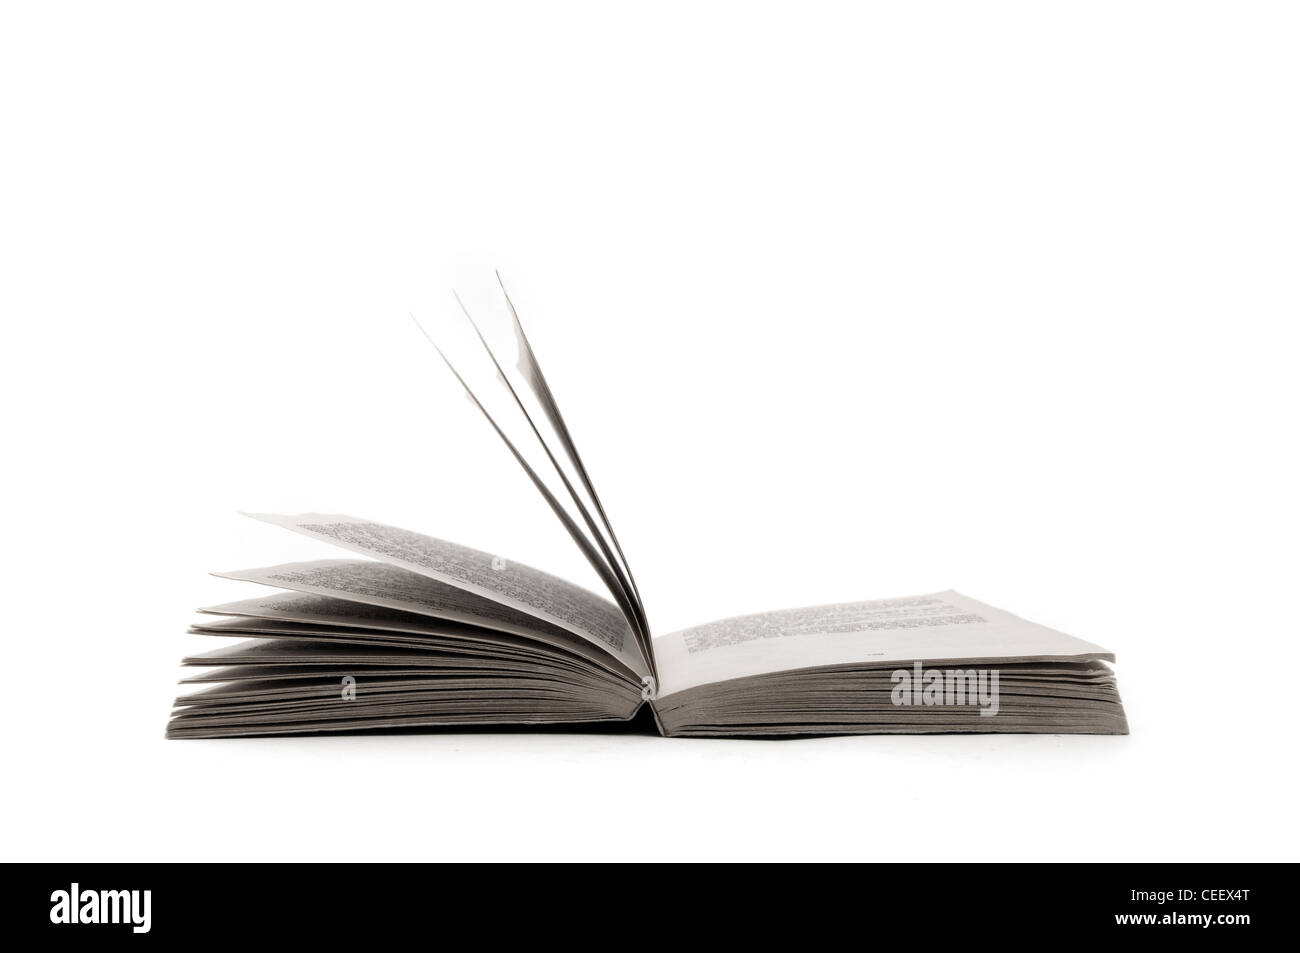 Big open book over a white background - Stock Image